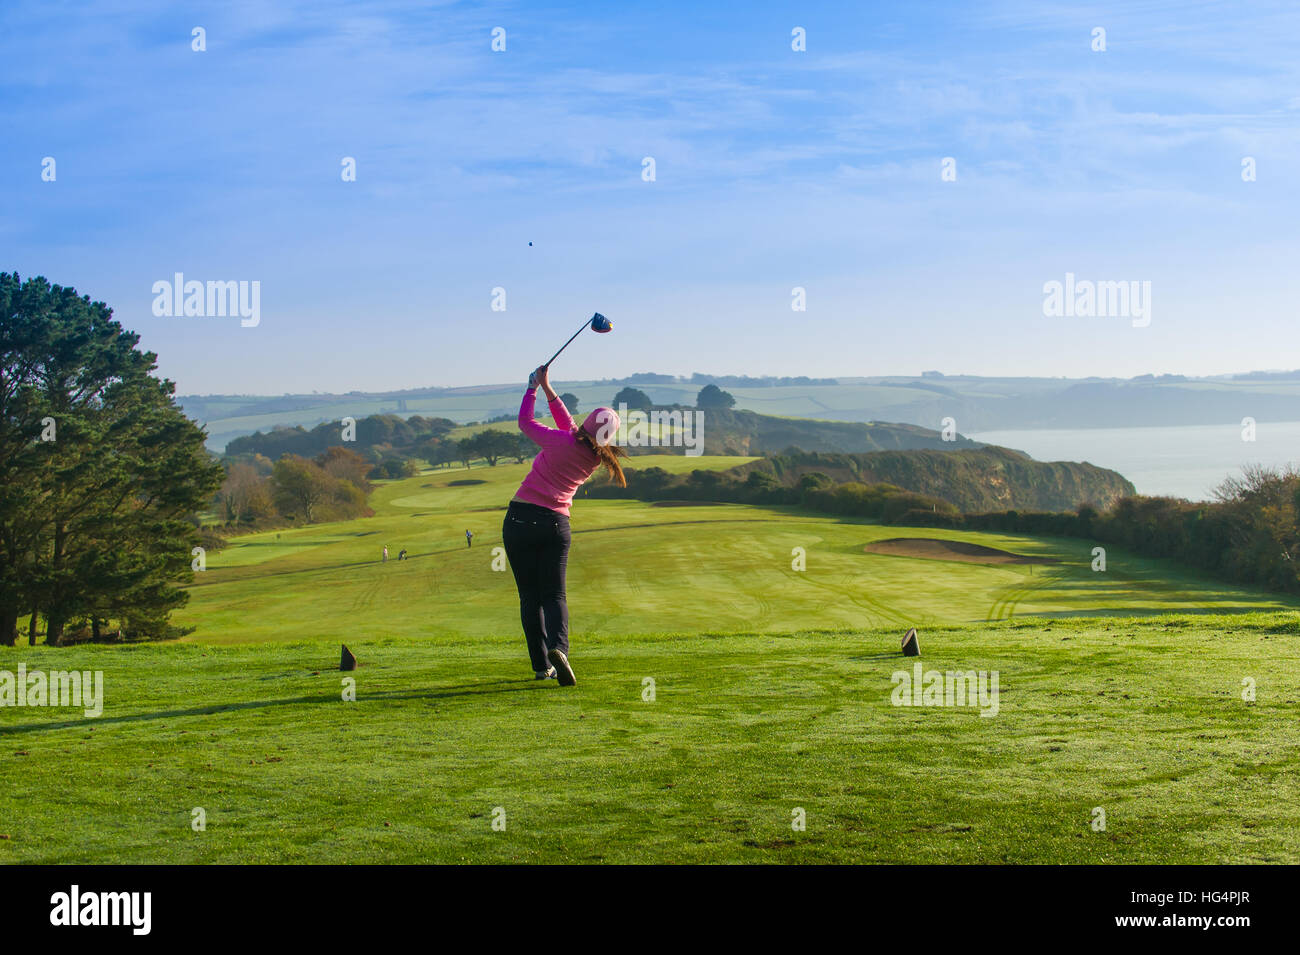 A young female golfer teeing off at the first hole. - Stock Image